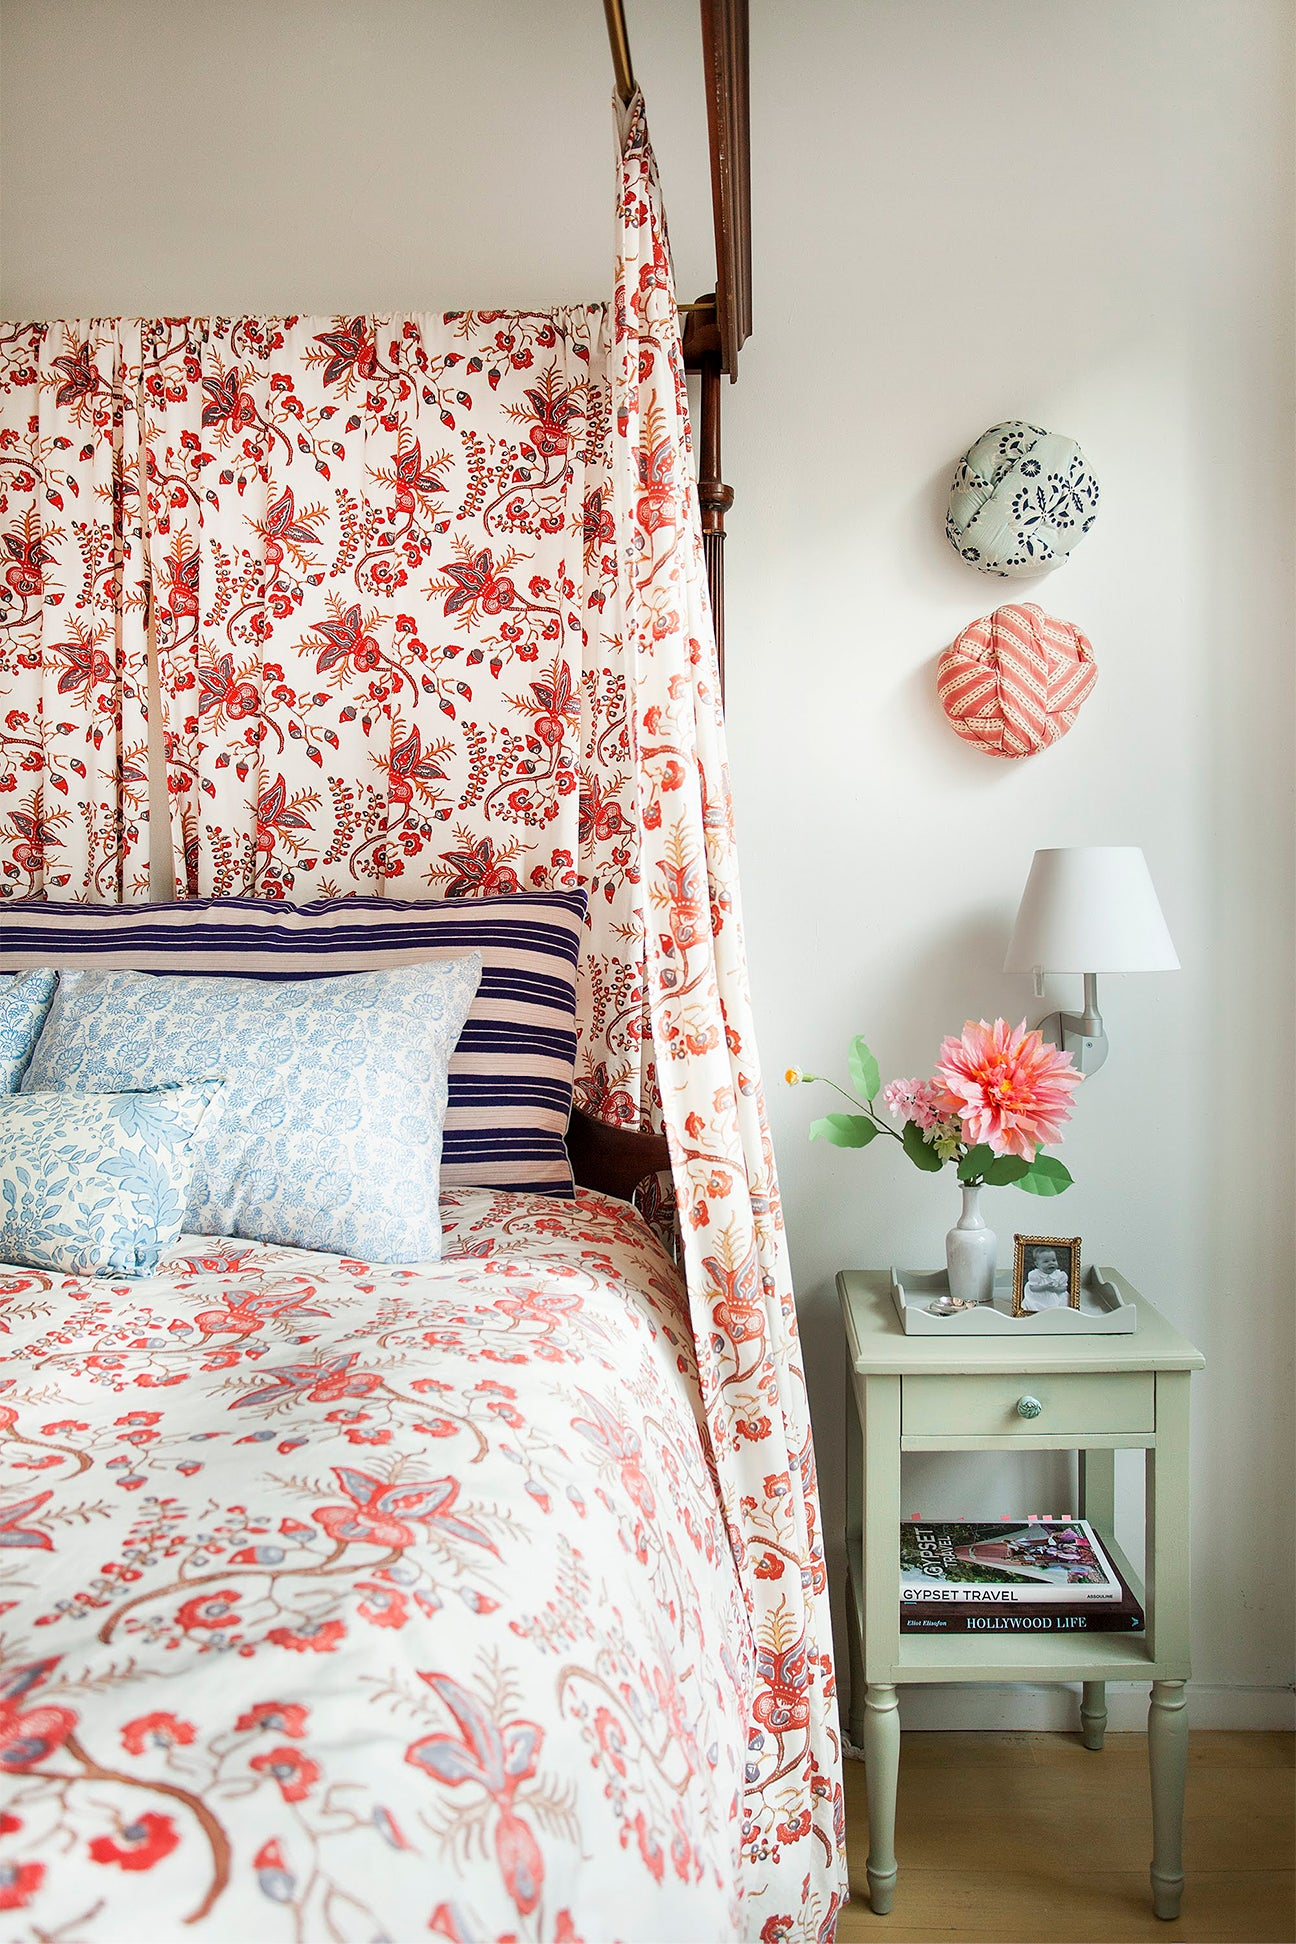 bed cloacked in red floral fabric